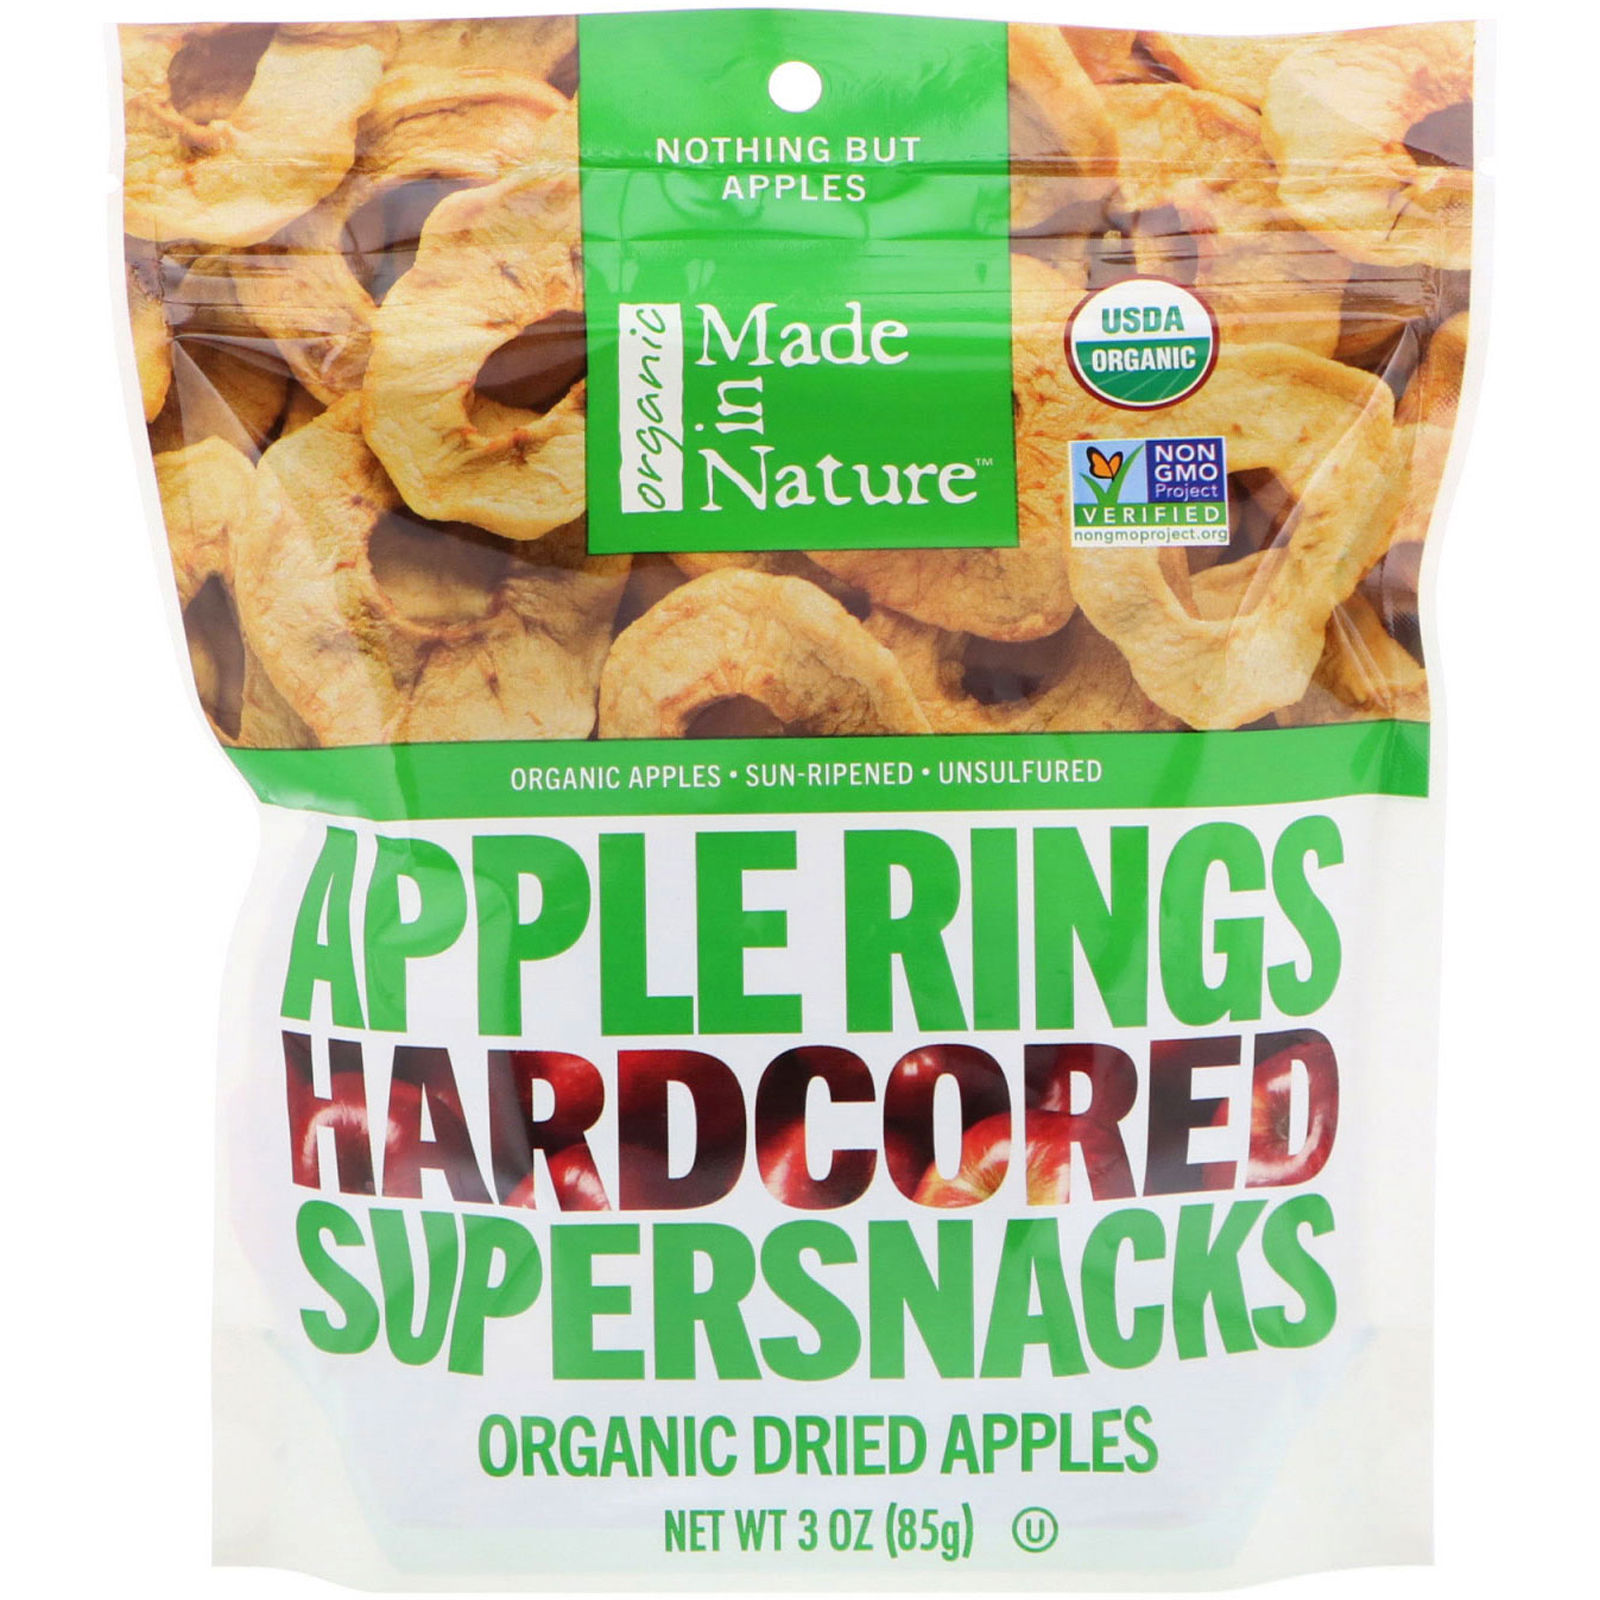 0cc37b1737b Made in Nature, Organic Dried Apple Rings, Hardcored Supersnacks, 3 oz (85  g)